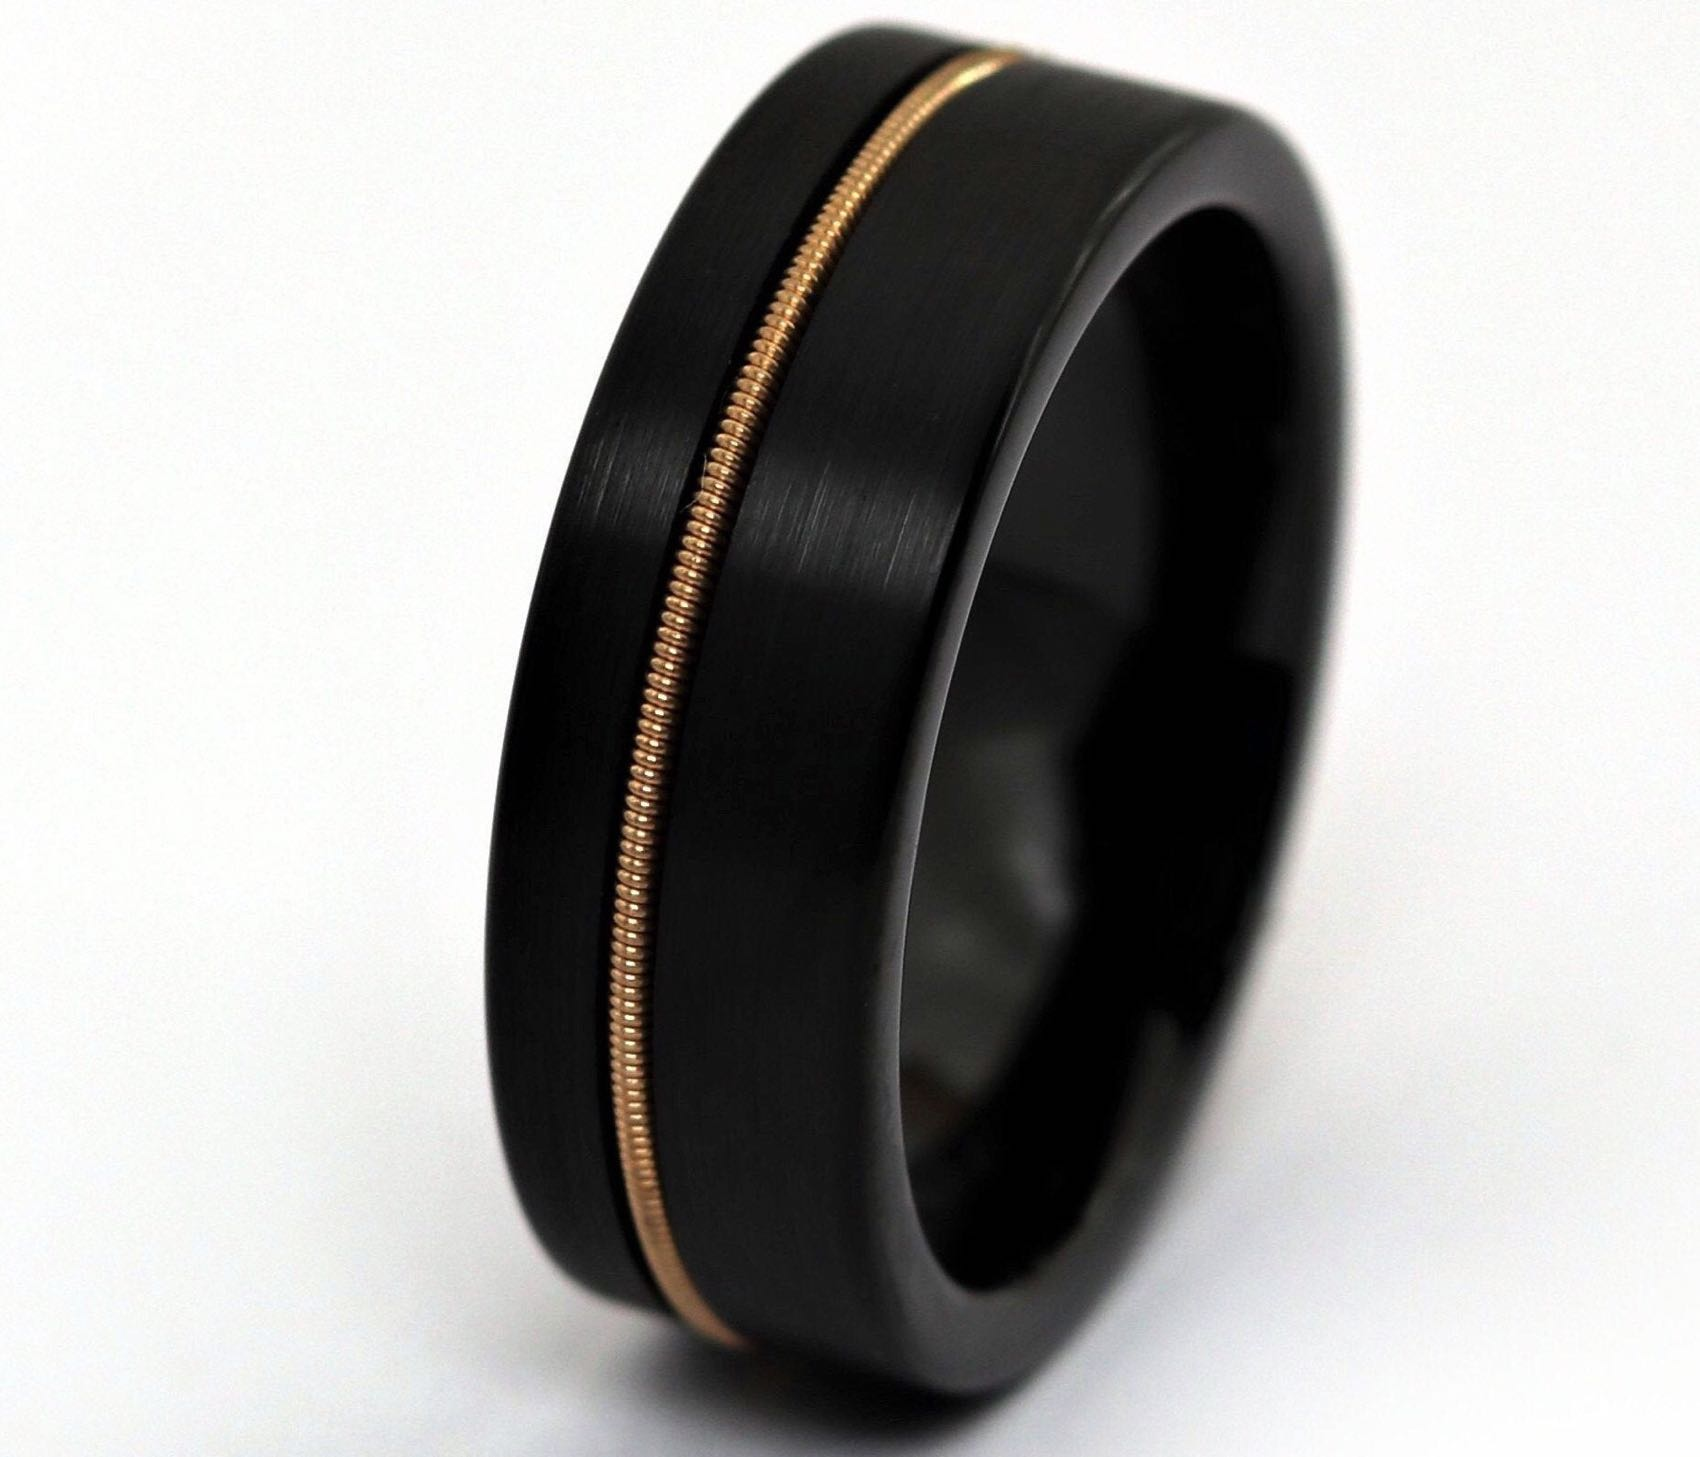 anvil-rings-guitar-string-ring-black-tungsten-carbide